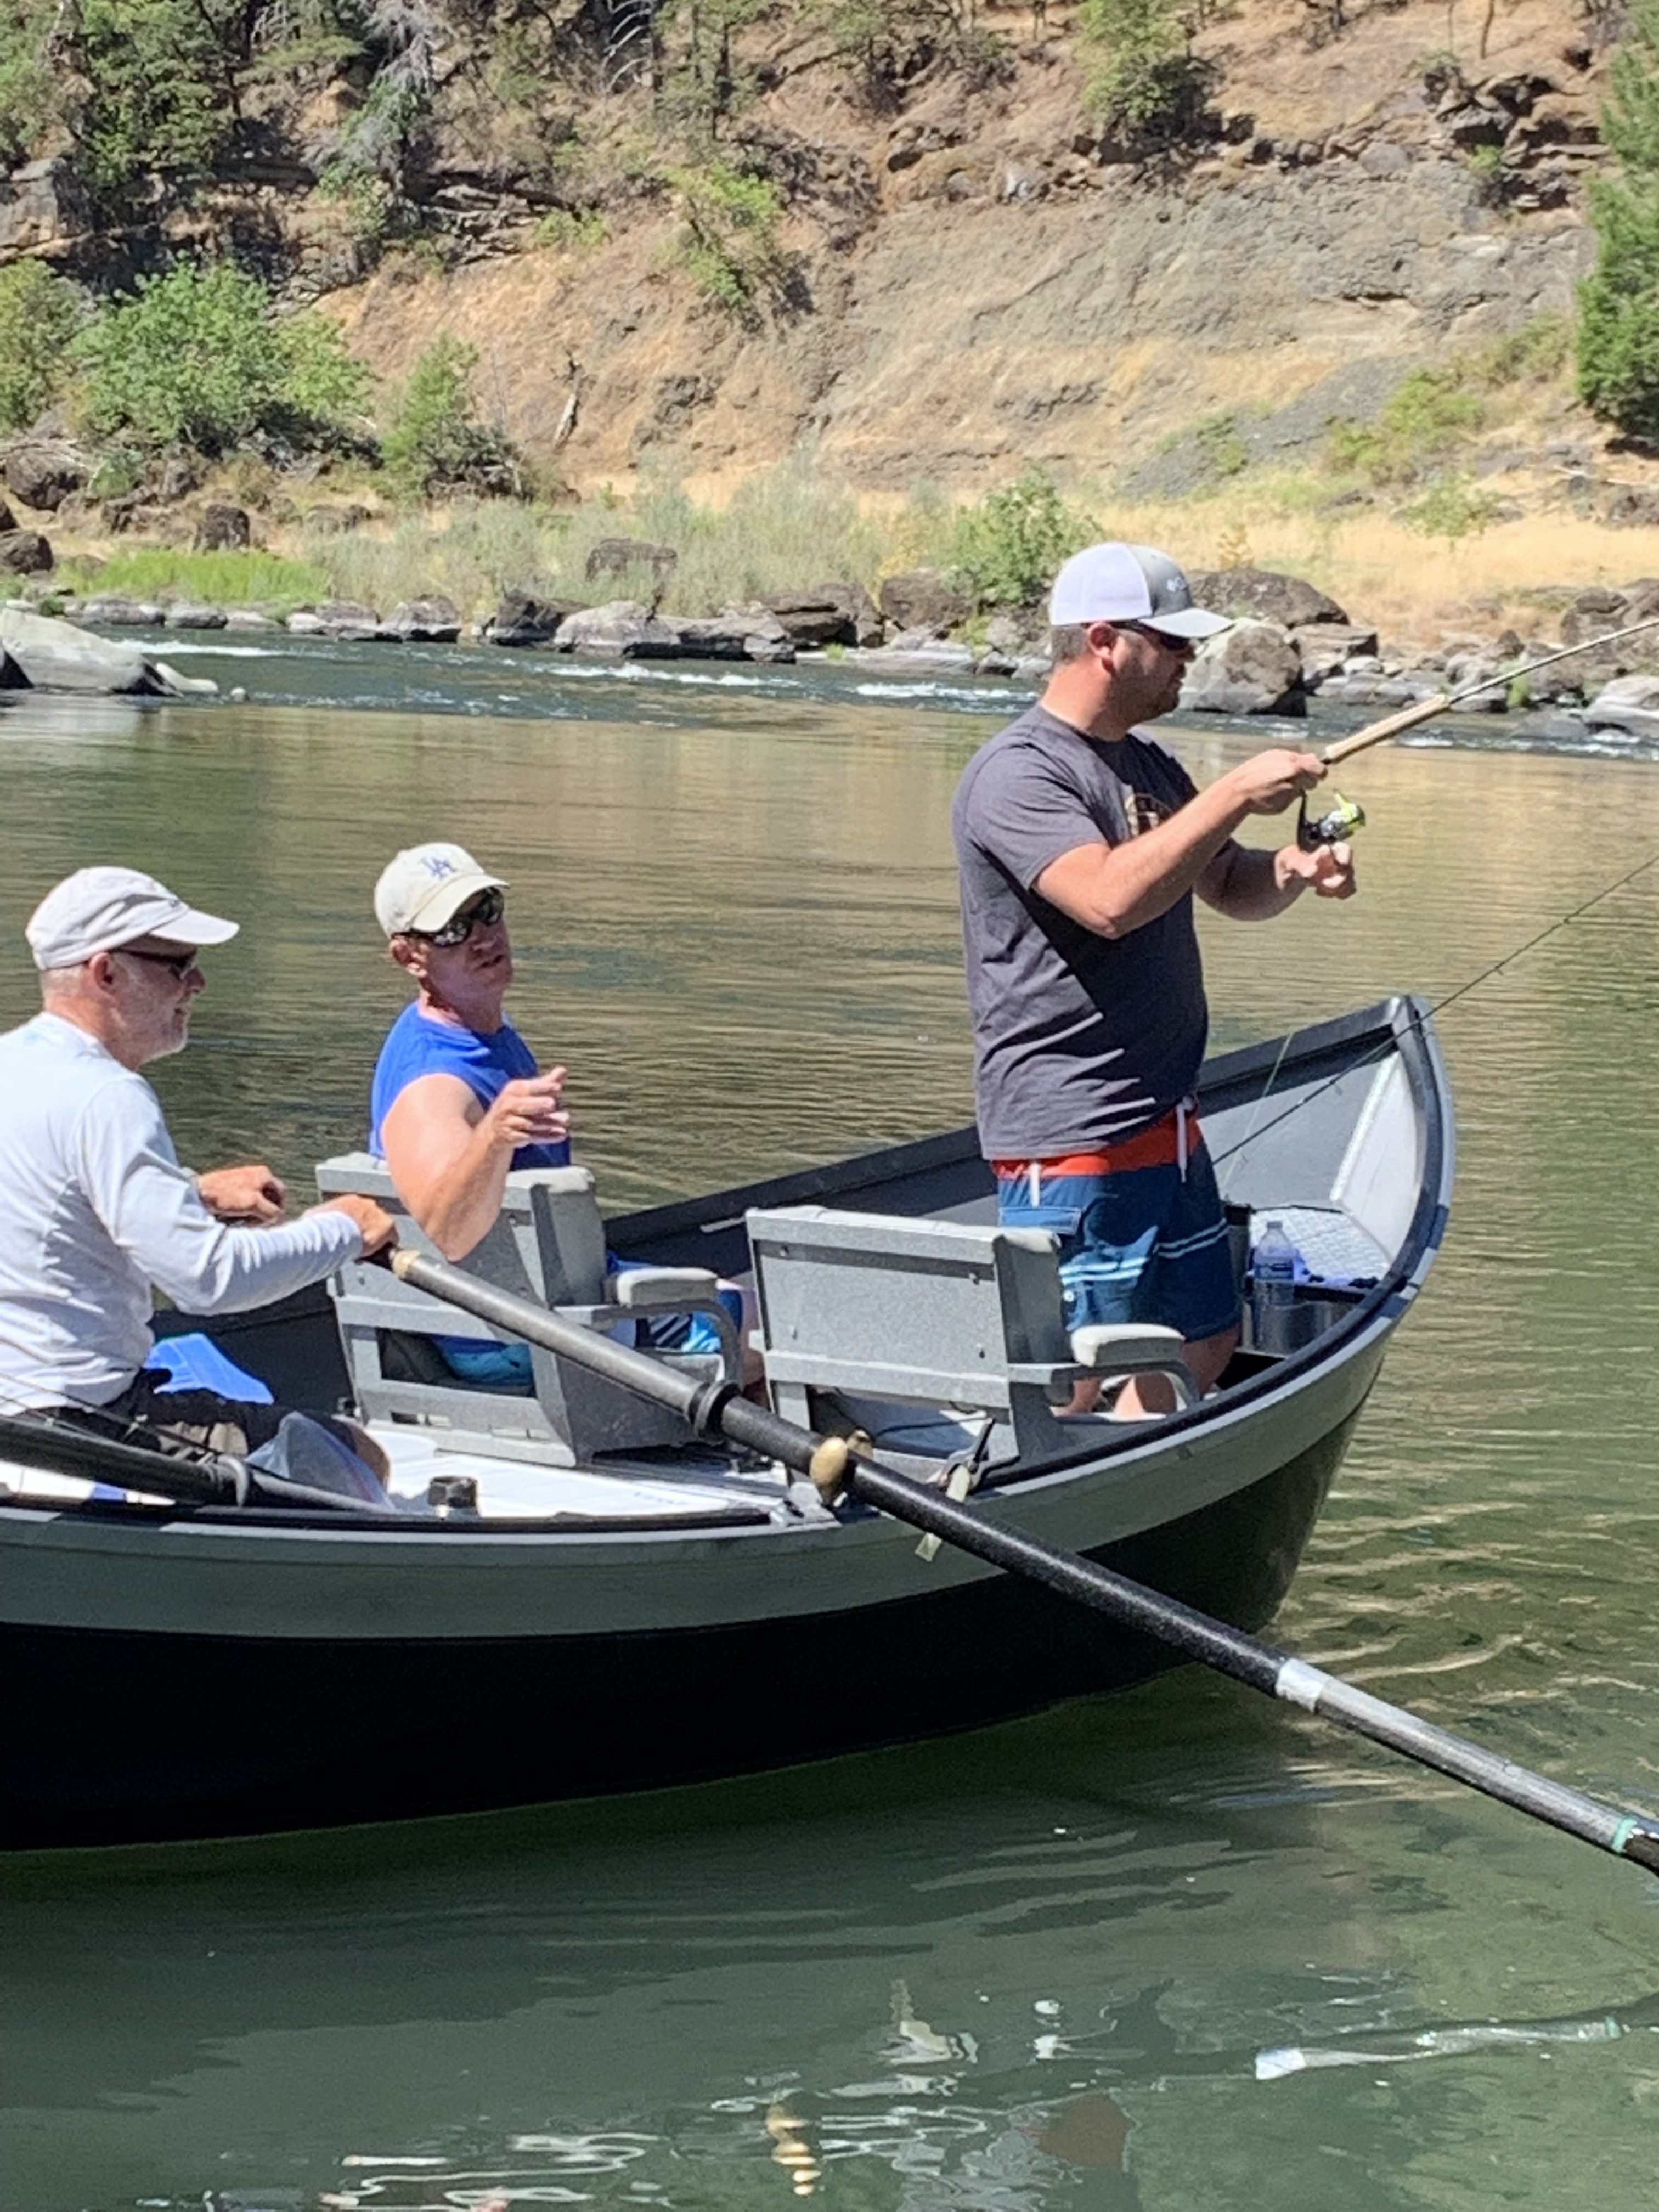 Fishing guide Dustin gives directions to staff while guest fishes on the Rogue River.